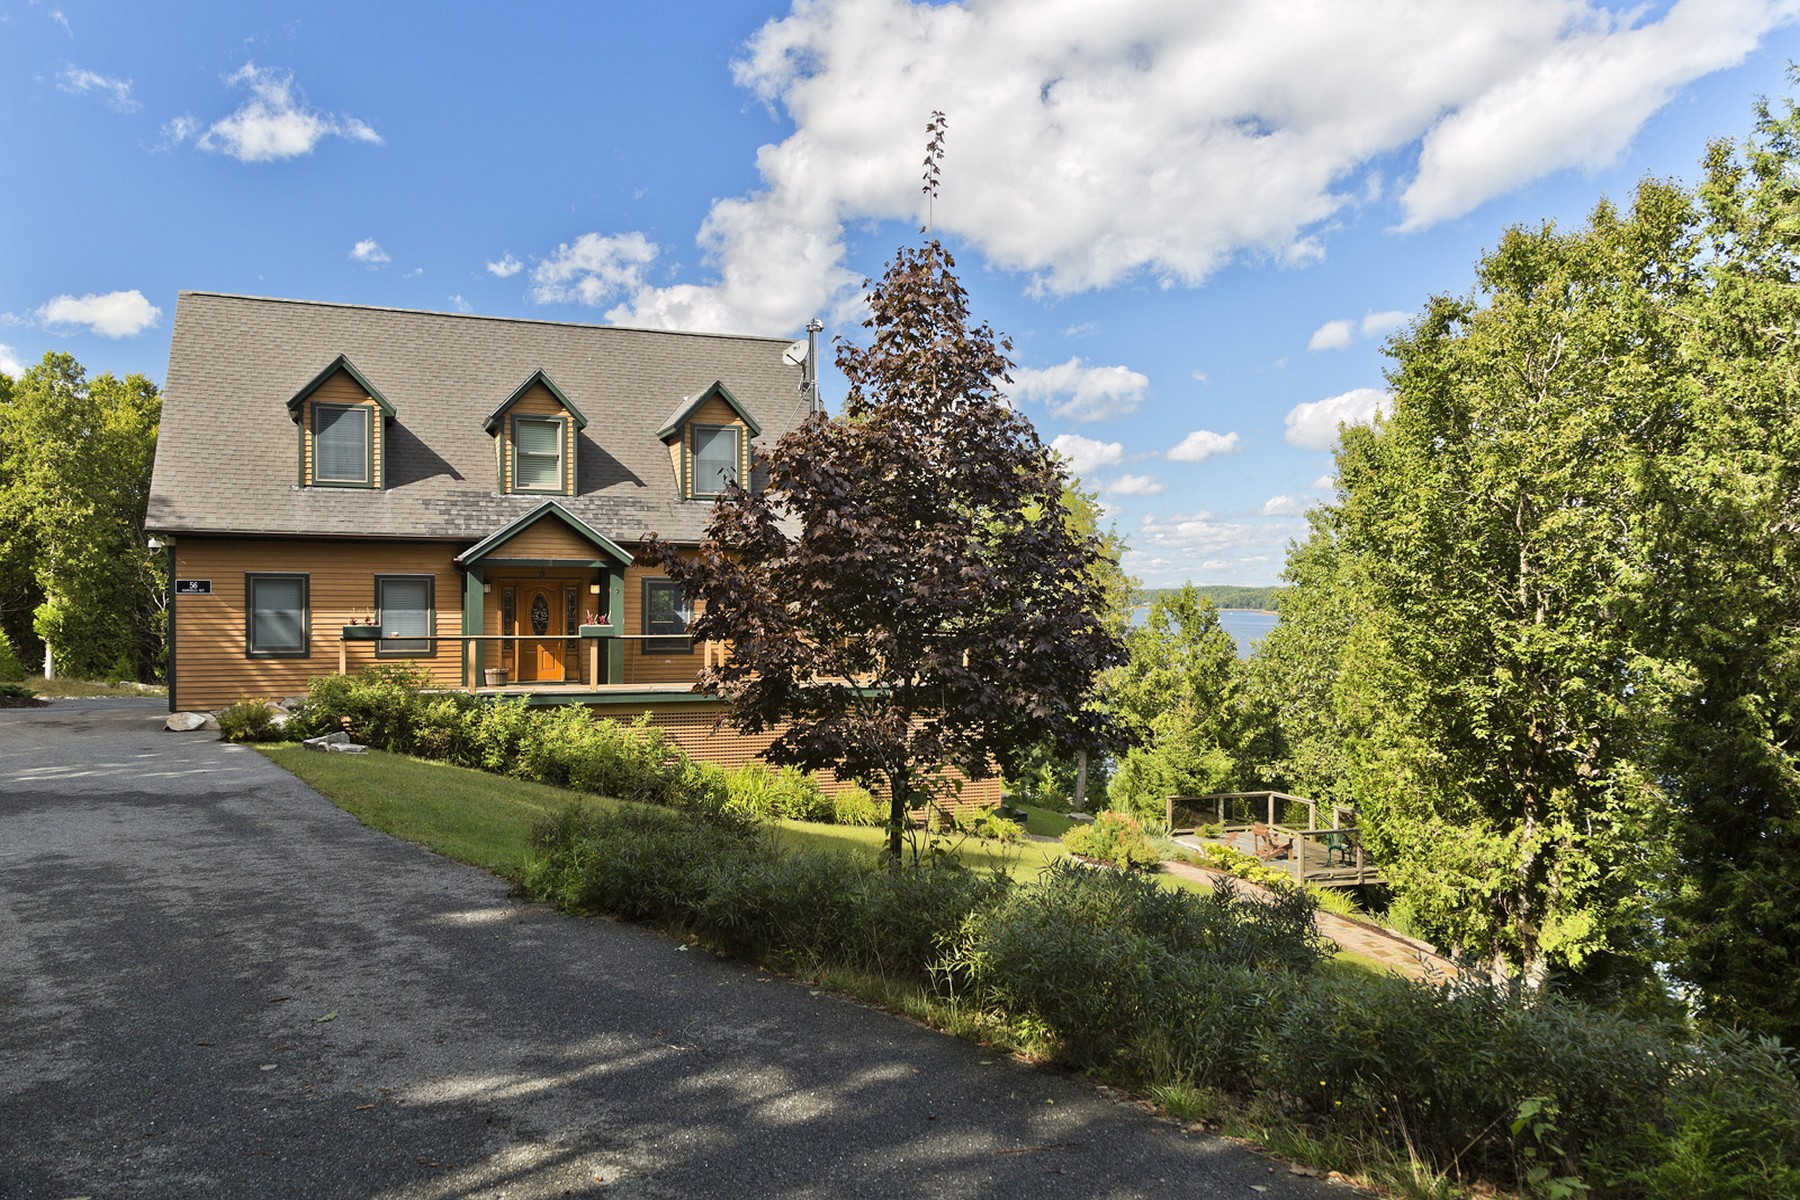 Single Family Home for Sale at Fjord House 56 Hannibals Way Mount Desert, Maine, 04660 United States